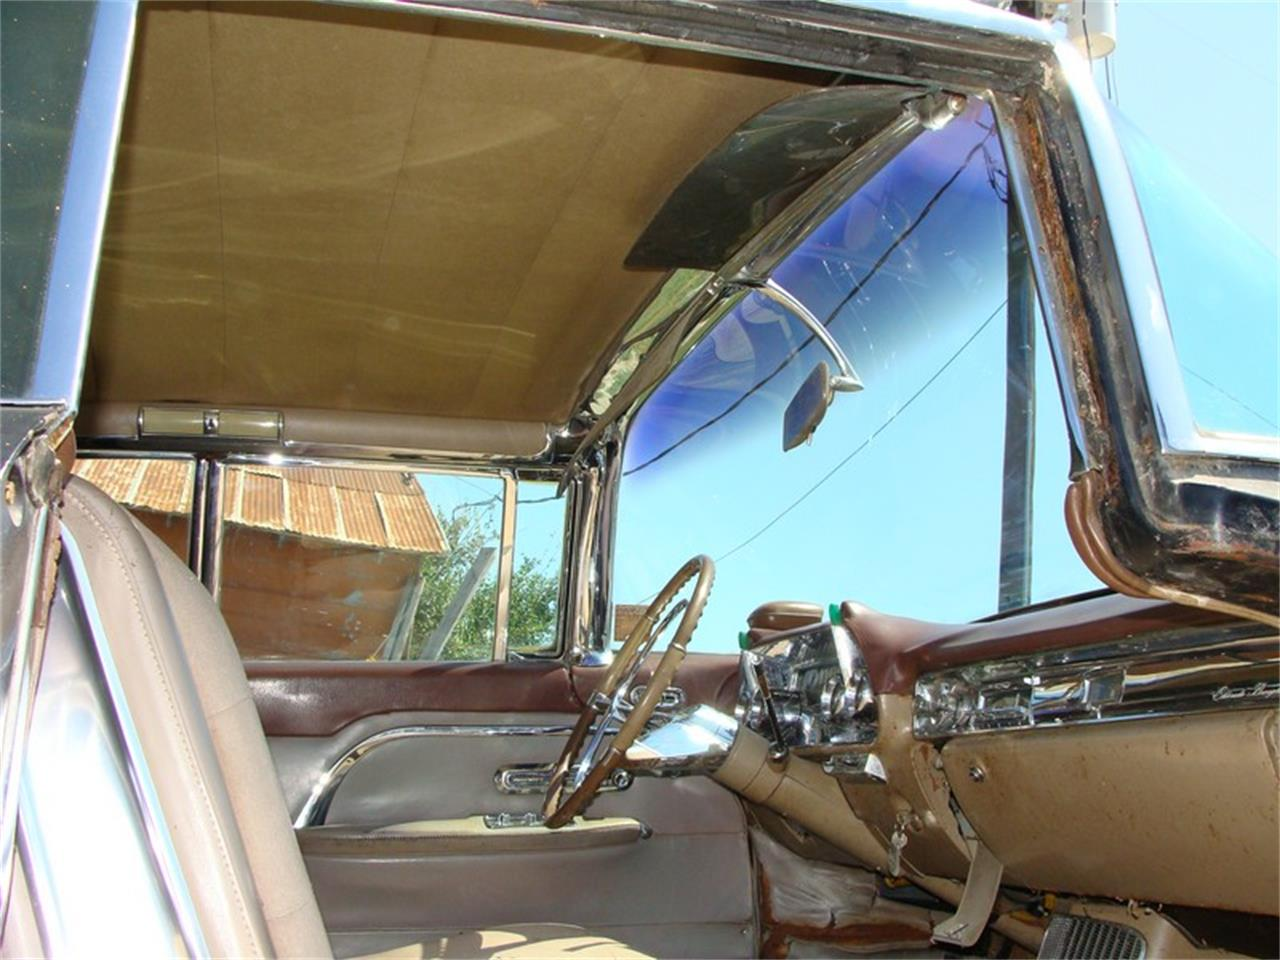 Large Picture of '58 Cadillac Eldorado Brougham - $30,000.00 Offered by Pete's Classic Cars - QELZ